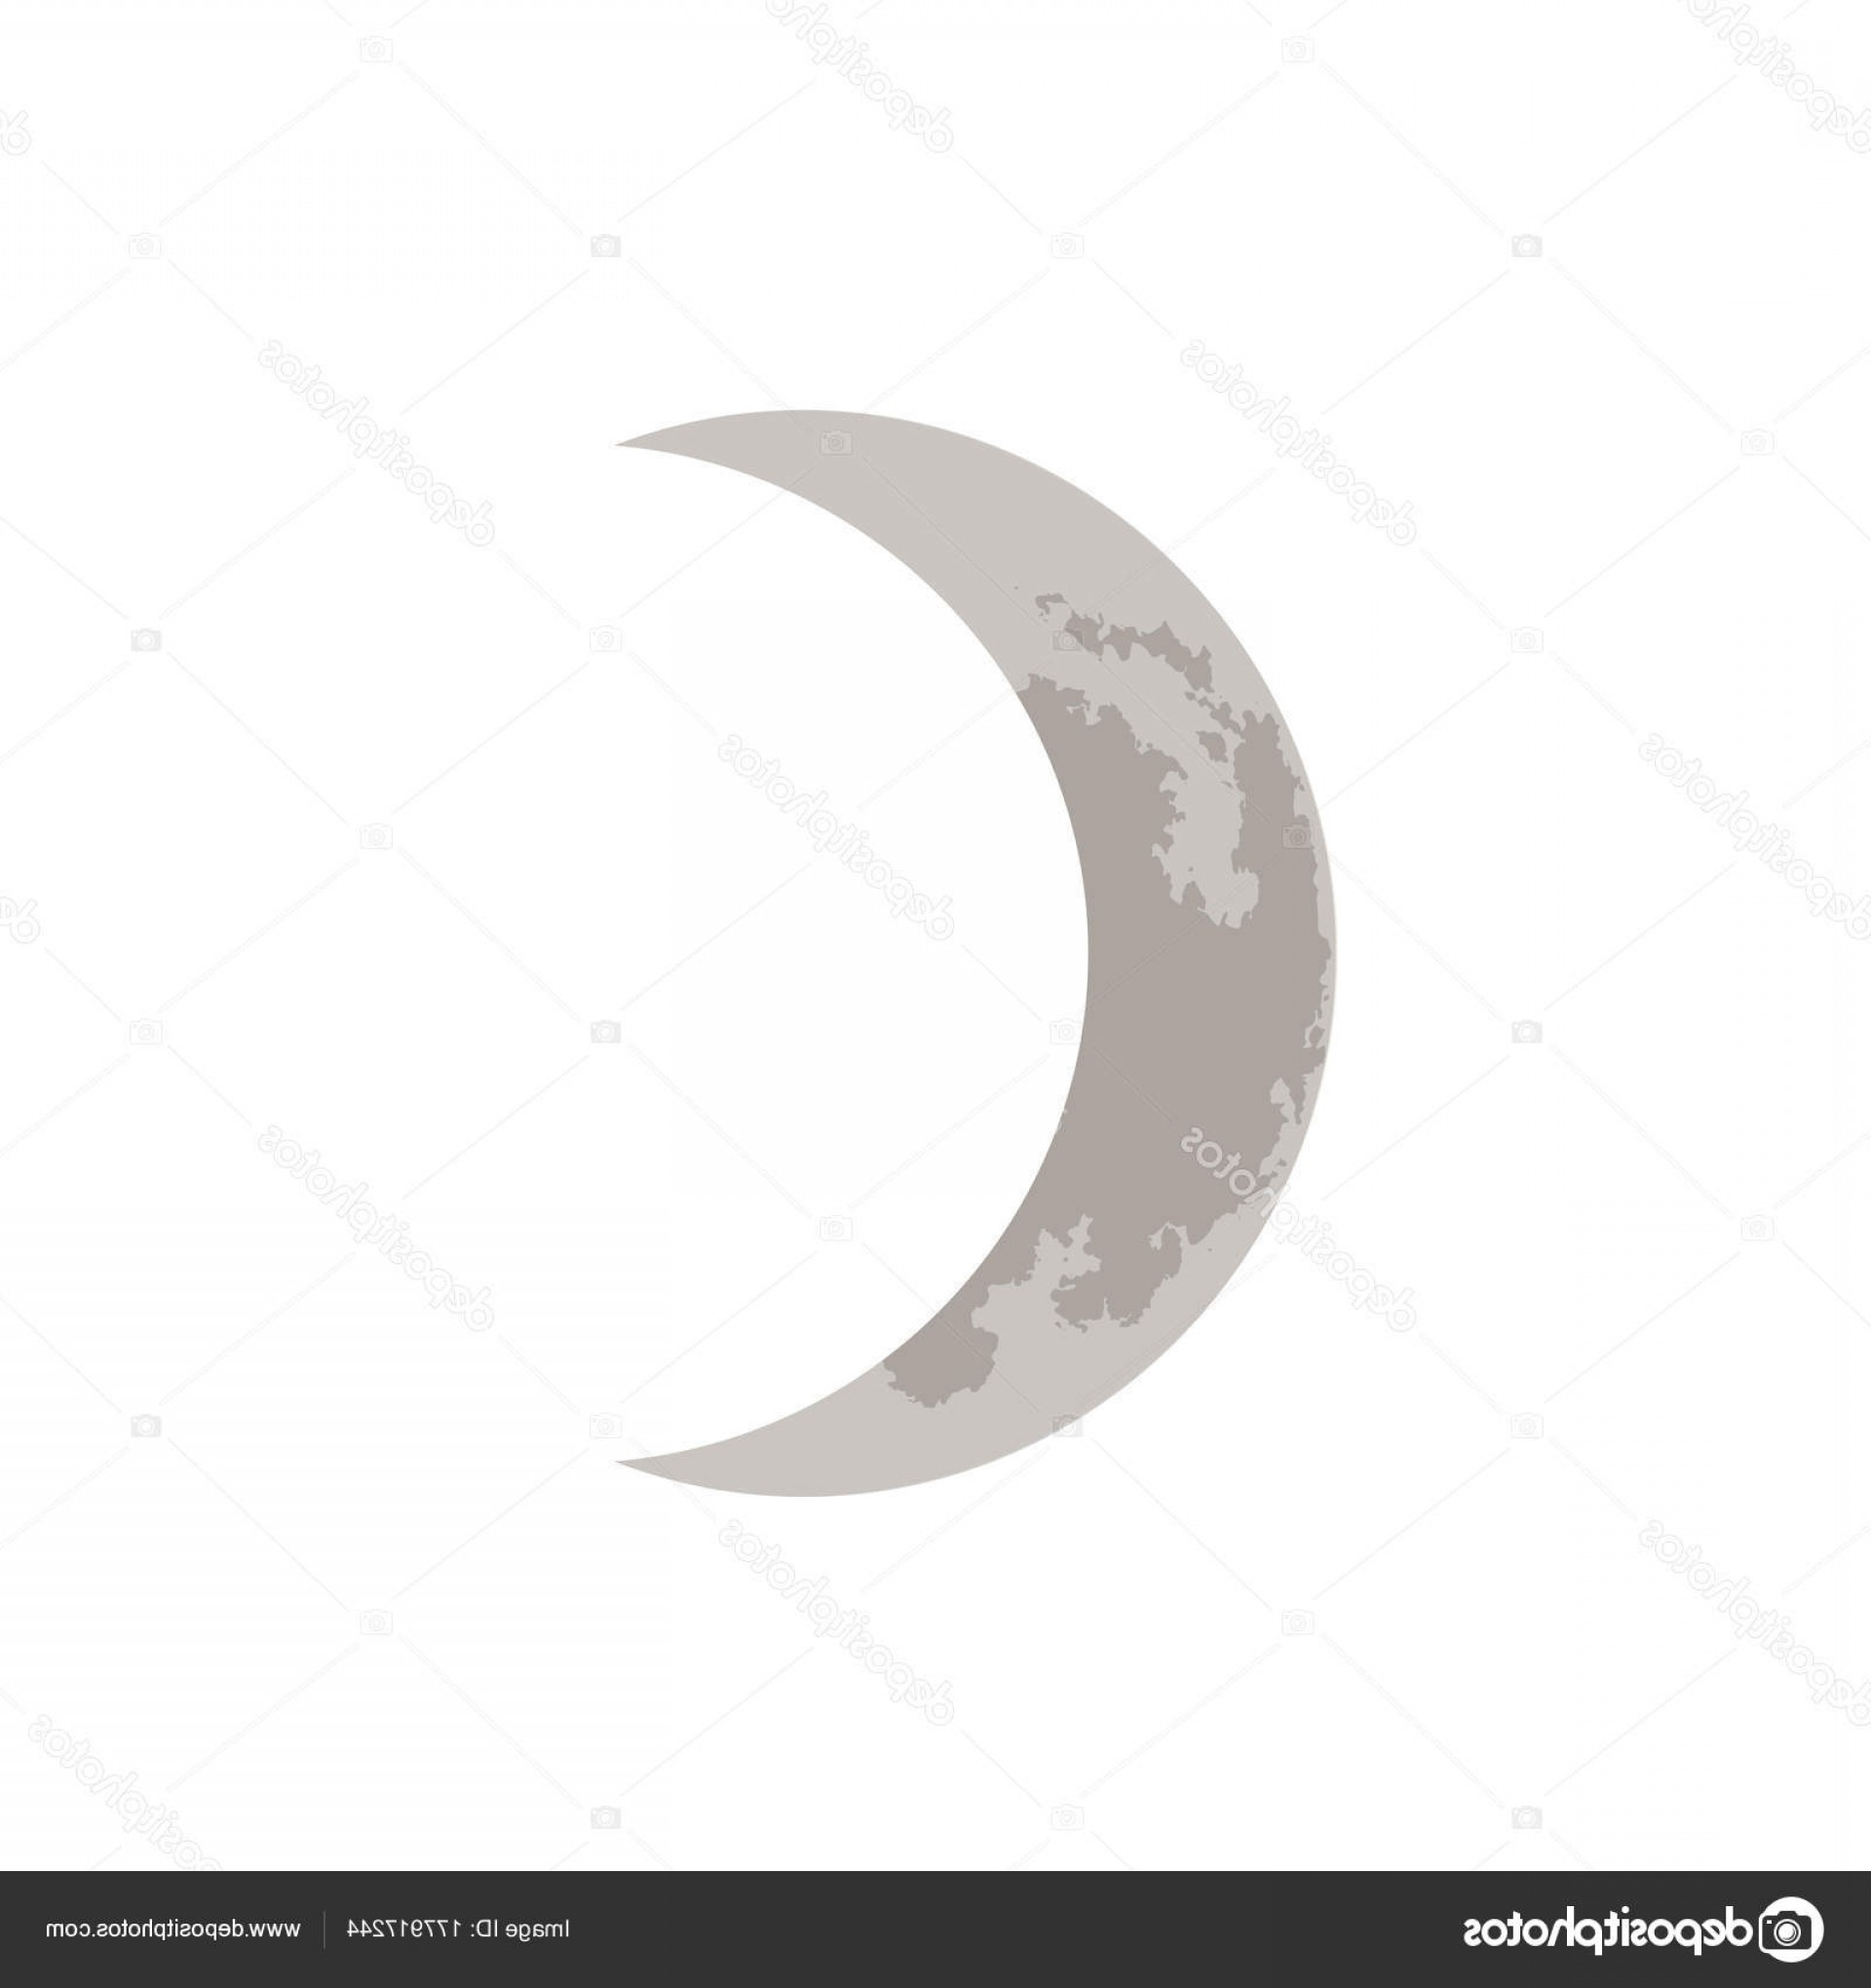 Cresent Moon Vector: Stock Illustration Crescent Moon Vector Illustration